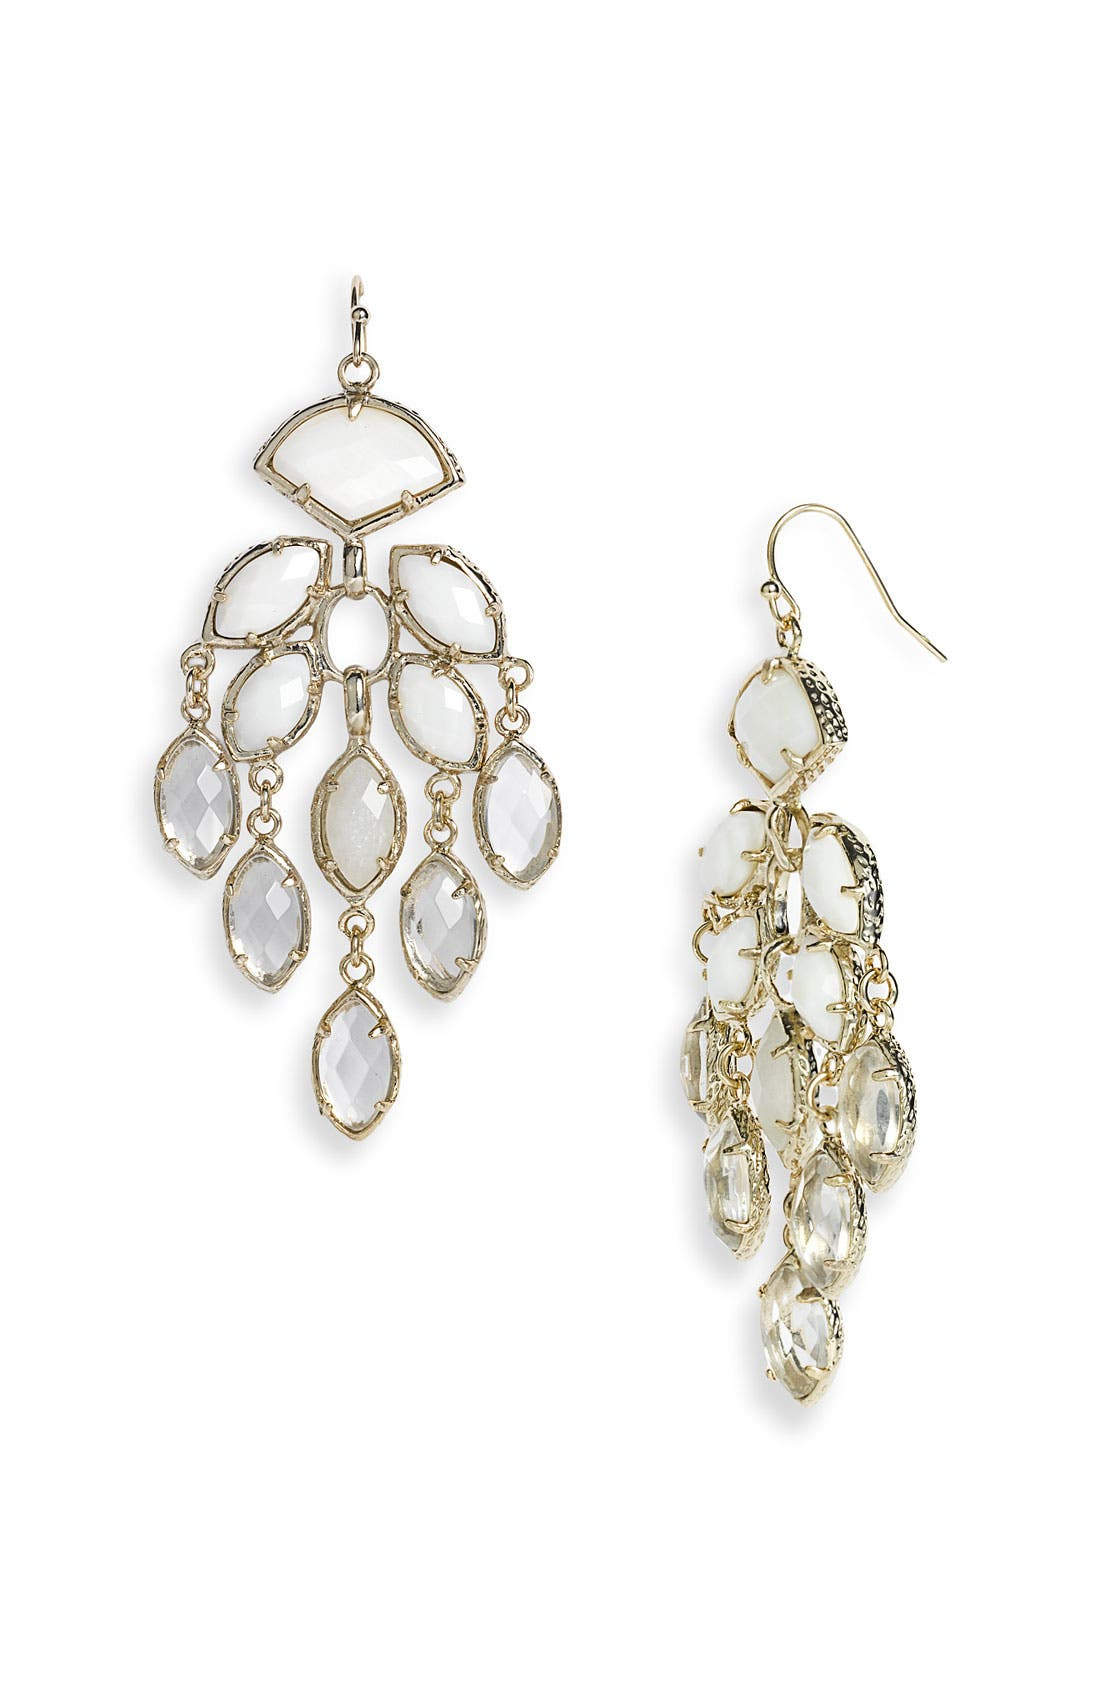 Main Image - Kendra Scott 'Gwen' Large Chandelier Earrings